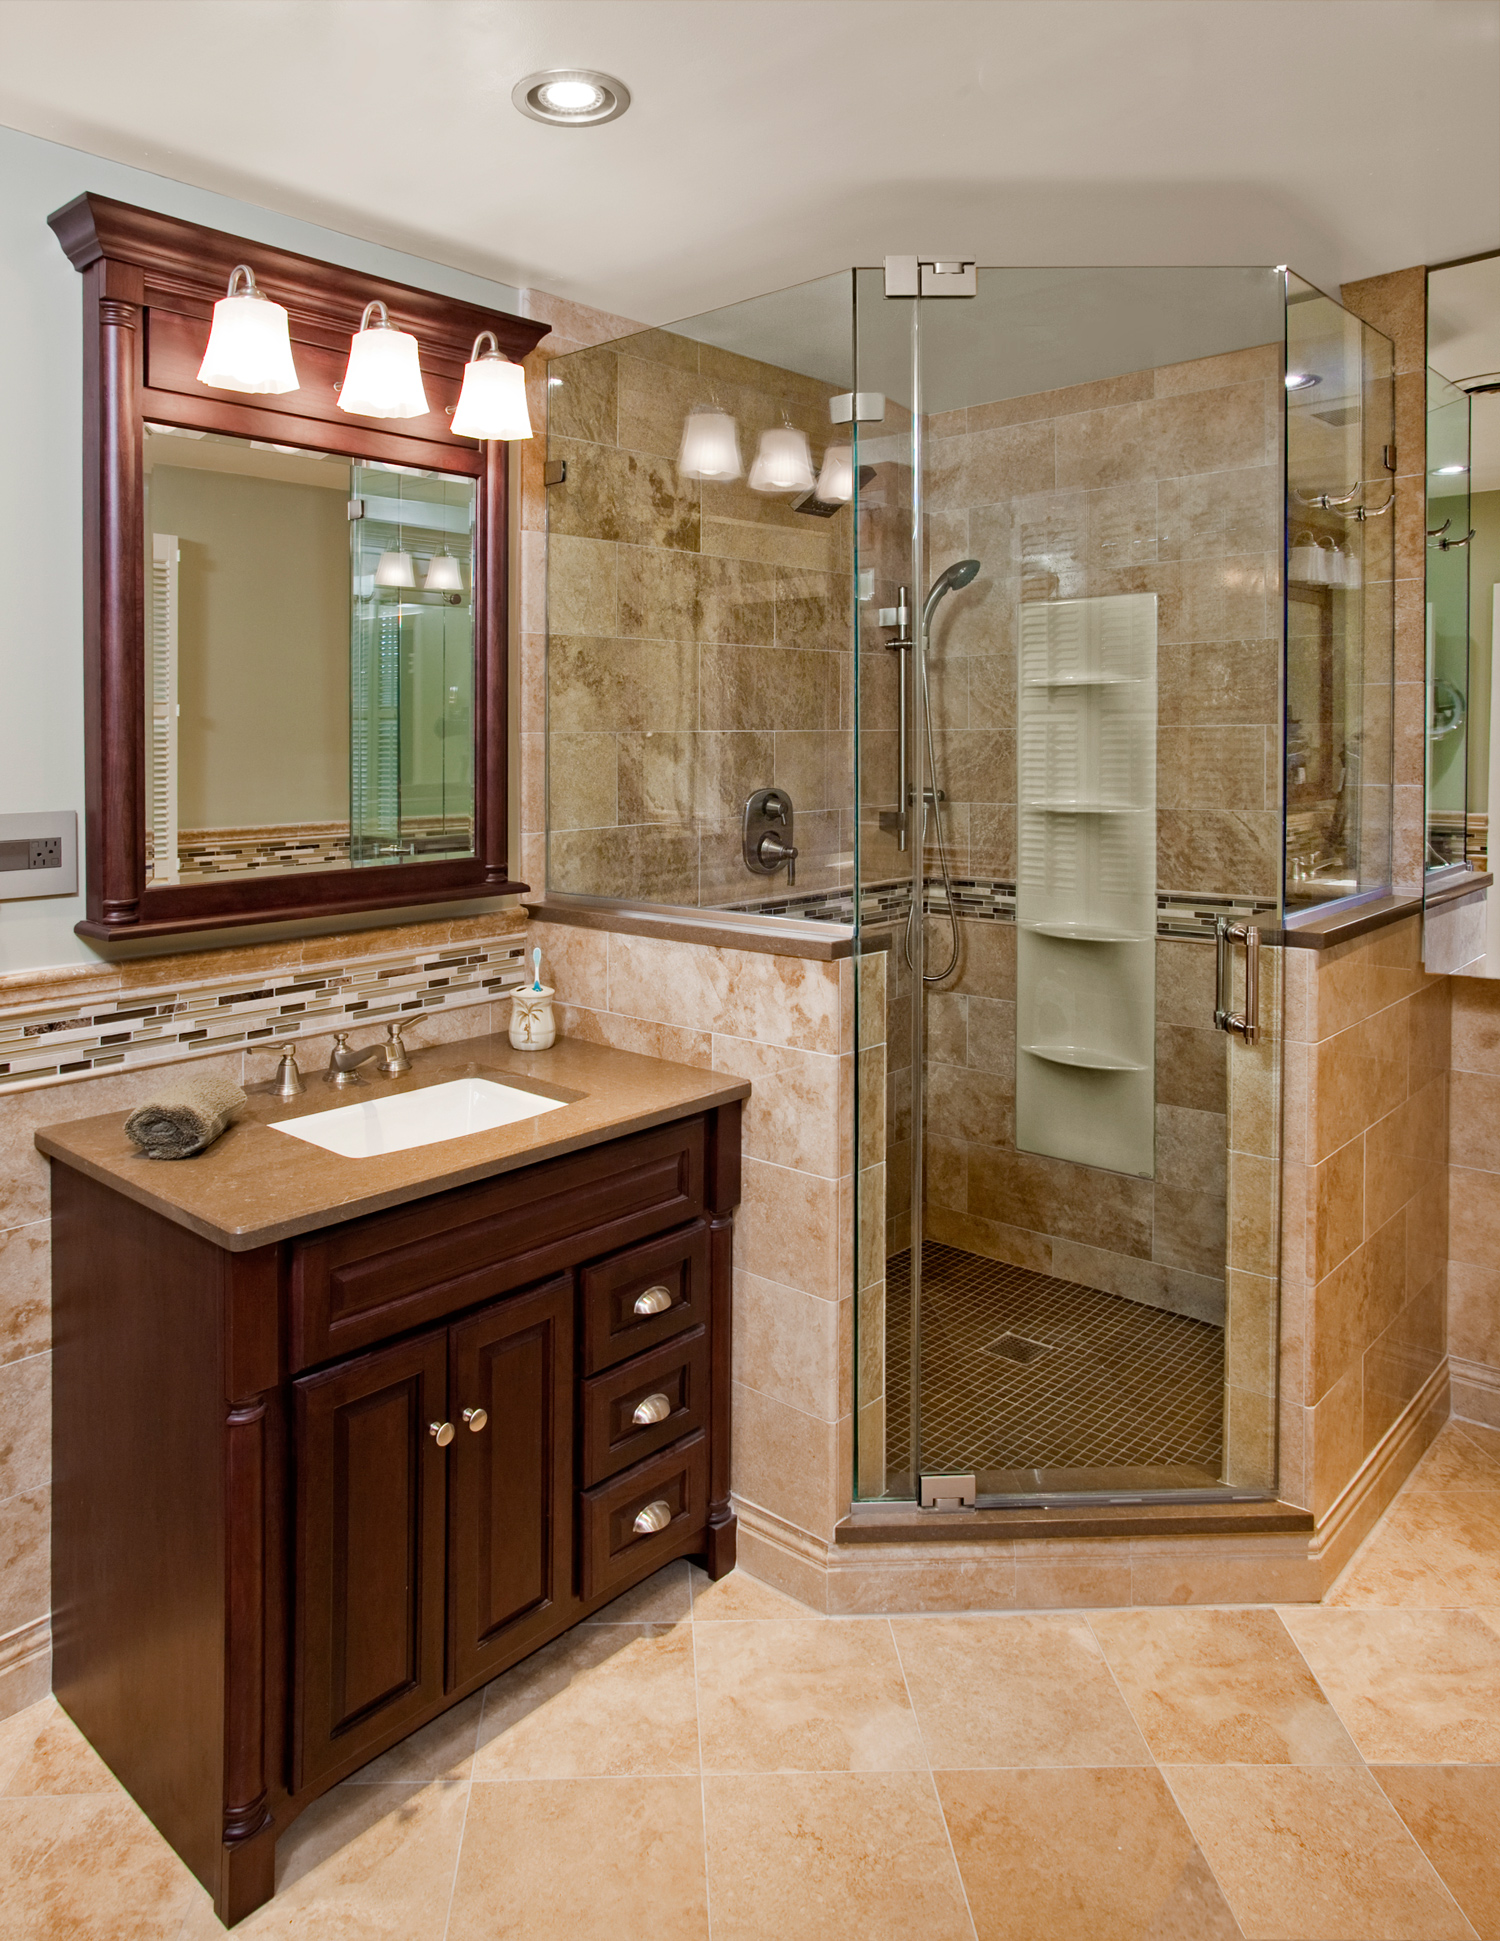 Bathroom Remodeling In Bucks And Montgomery County Mergen Home - Bathroom remodeling bucks county pa